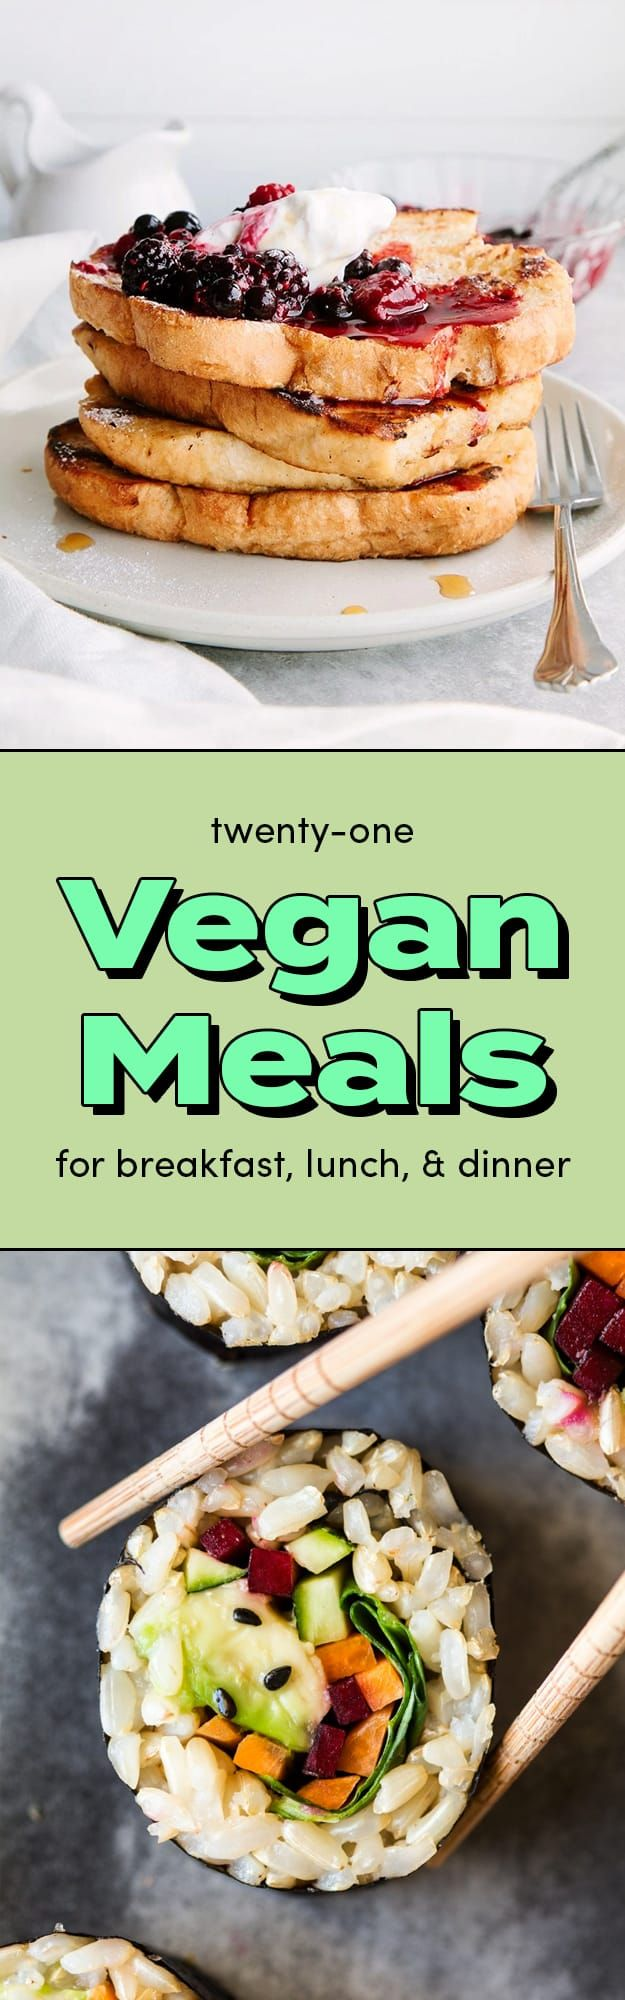 Here's 21 Breakfast, Lunch, And Dinner Recipes With No Meat Or Dairy